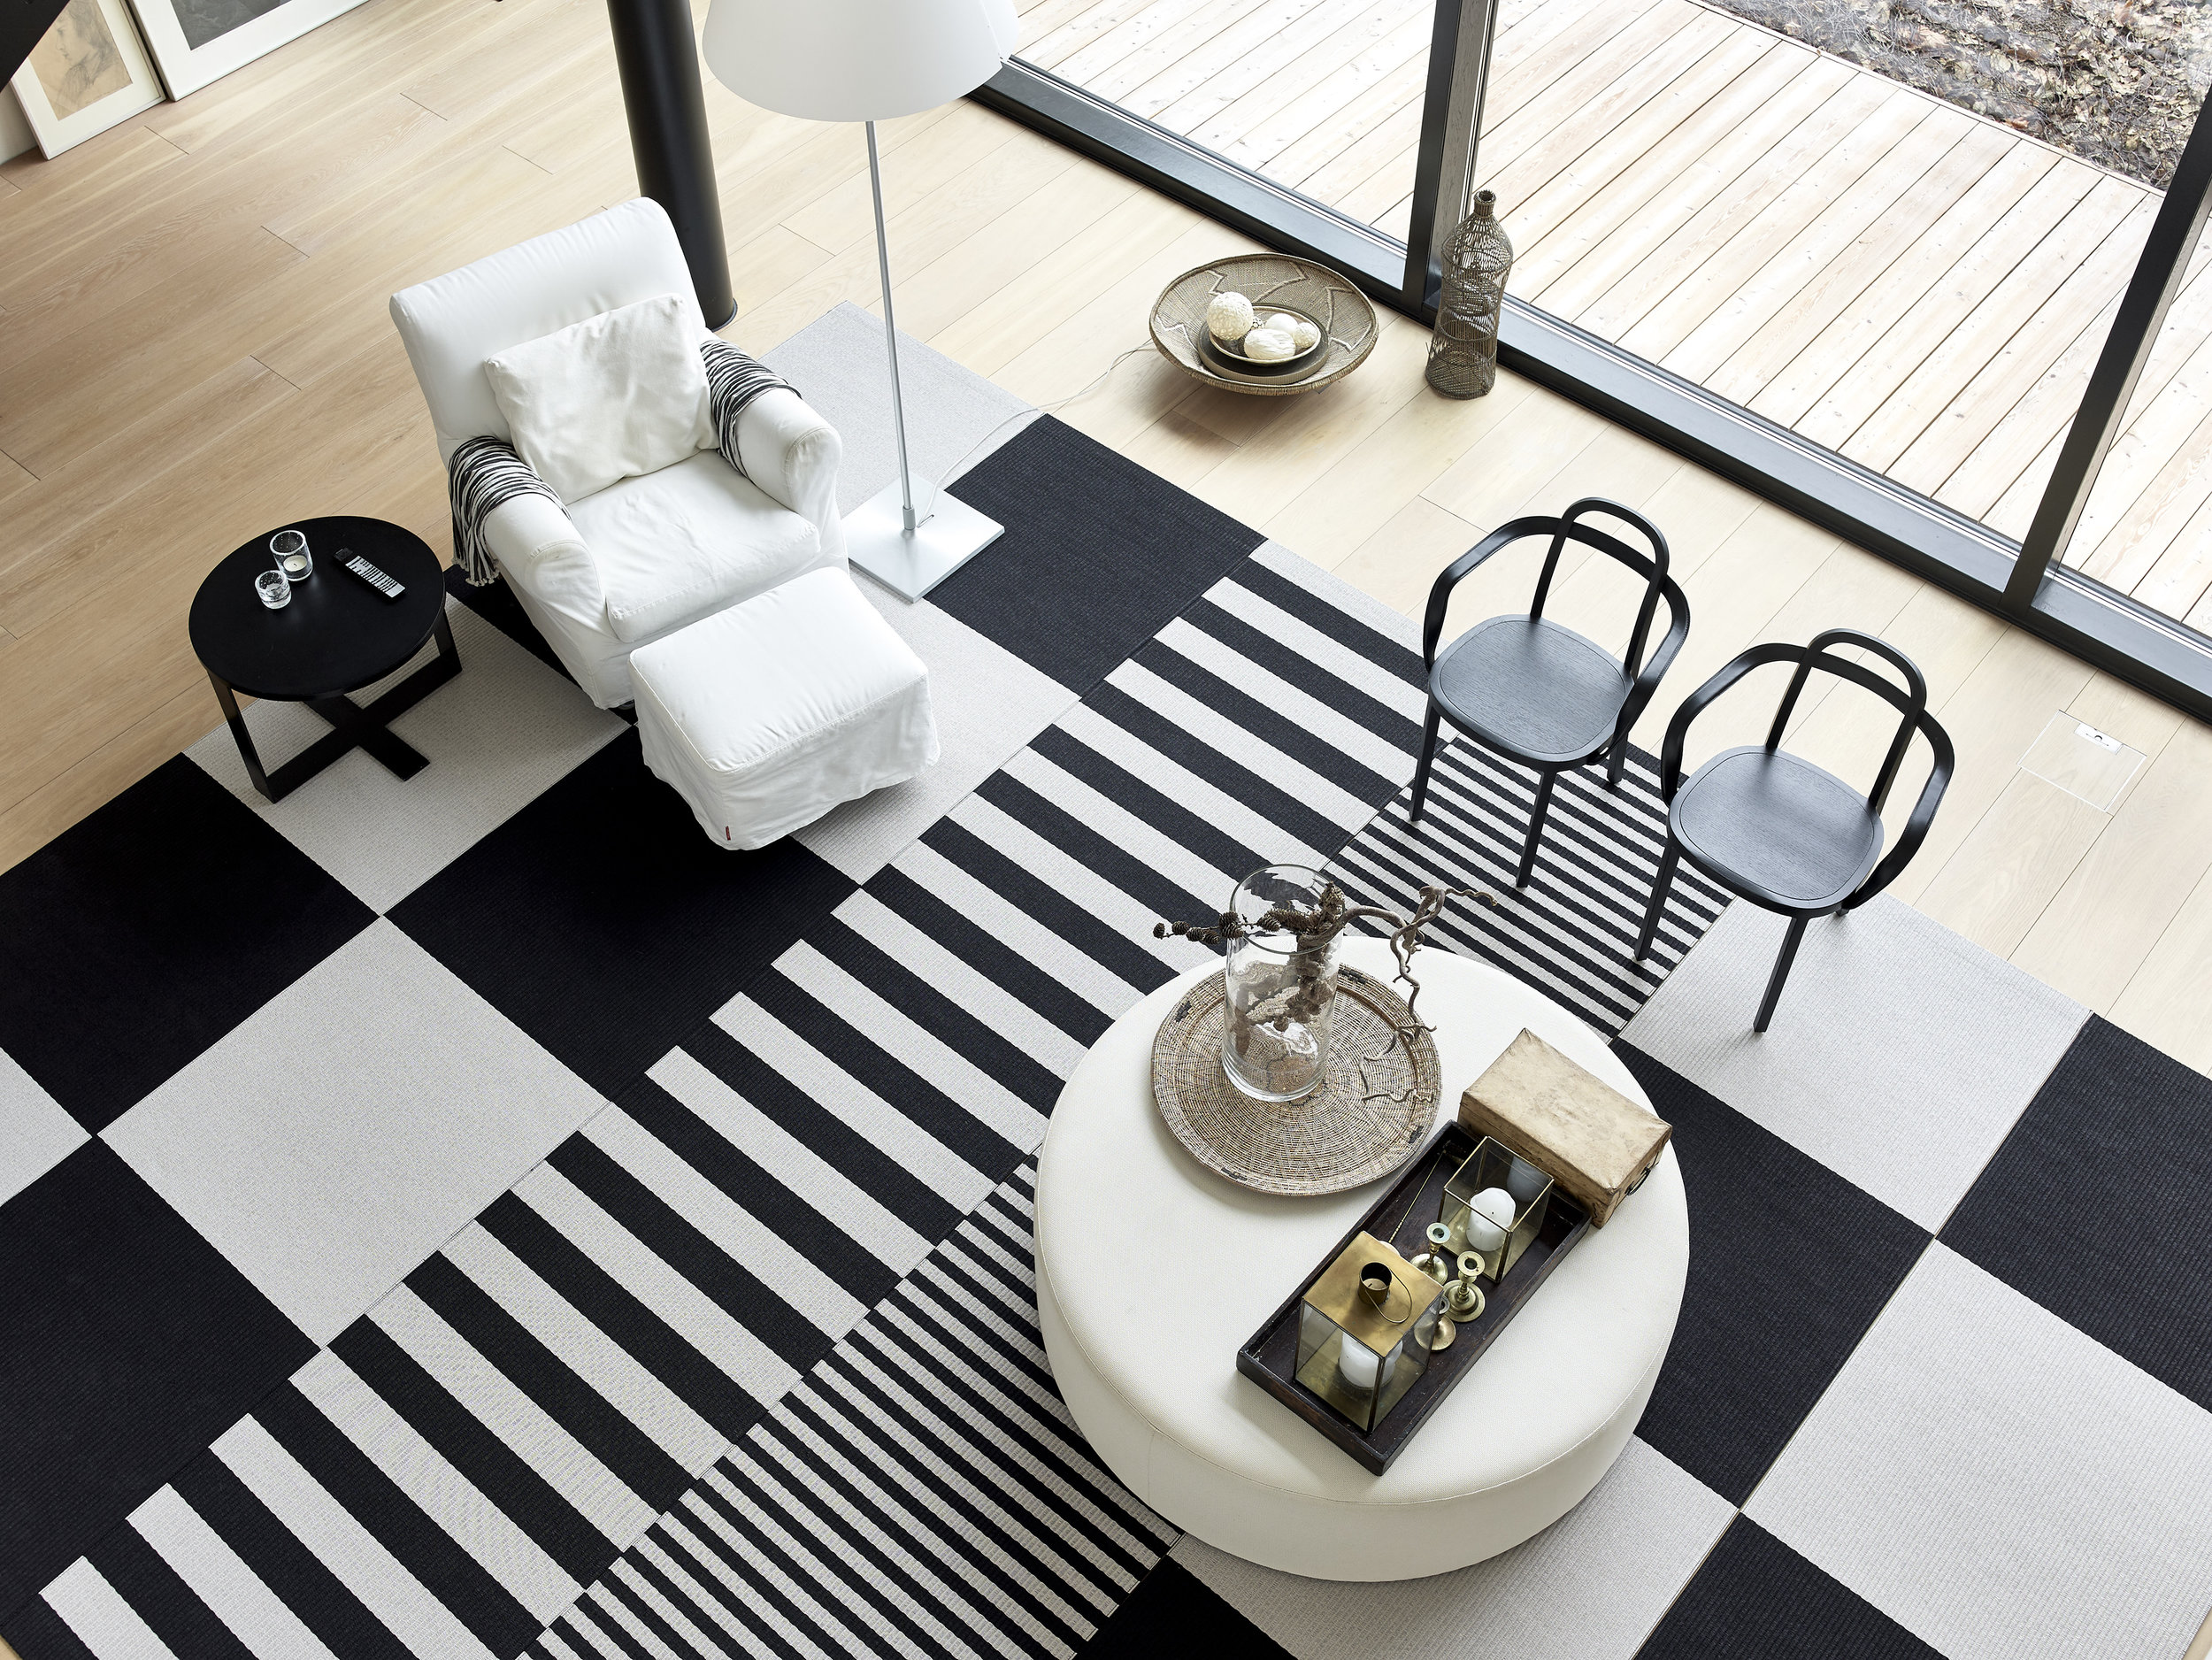 Woodnotes interior /  Squareplay  paper yarn combo with 1420915  Big Stripe  and 1190915 Stripe paper yarns black-stone, 4459 SIRO+ with armrests black